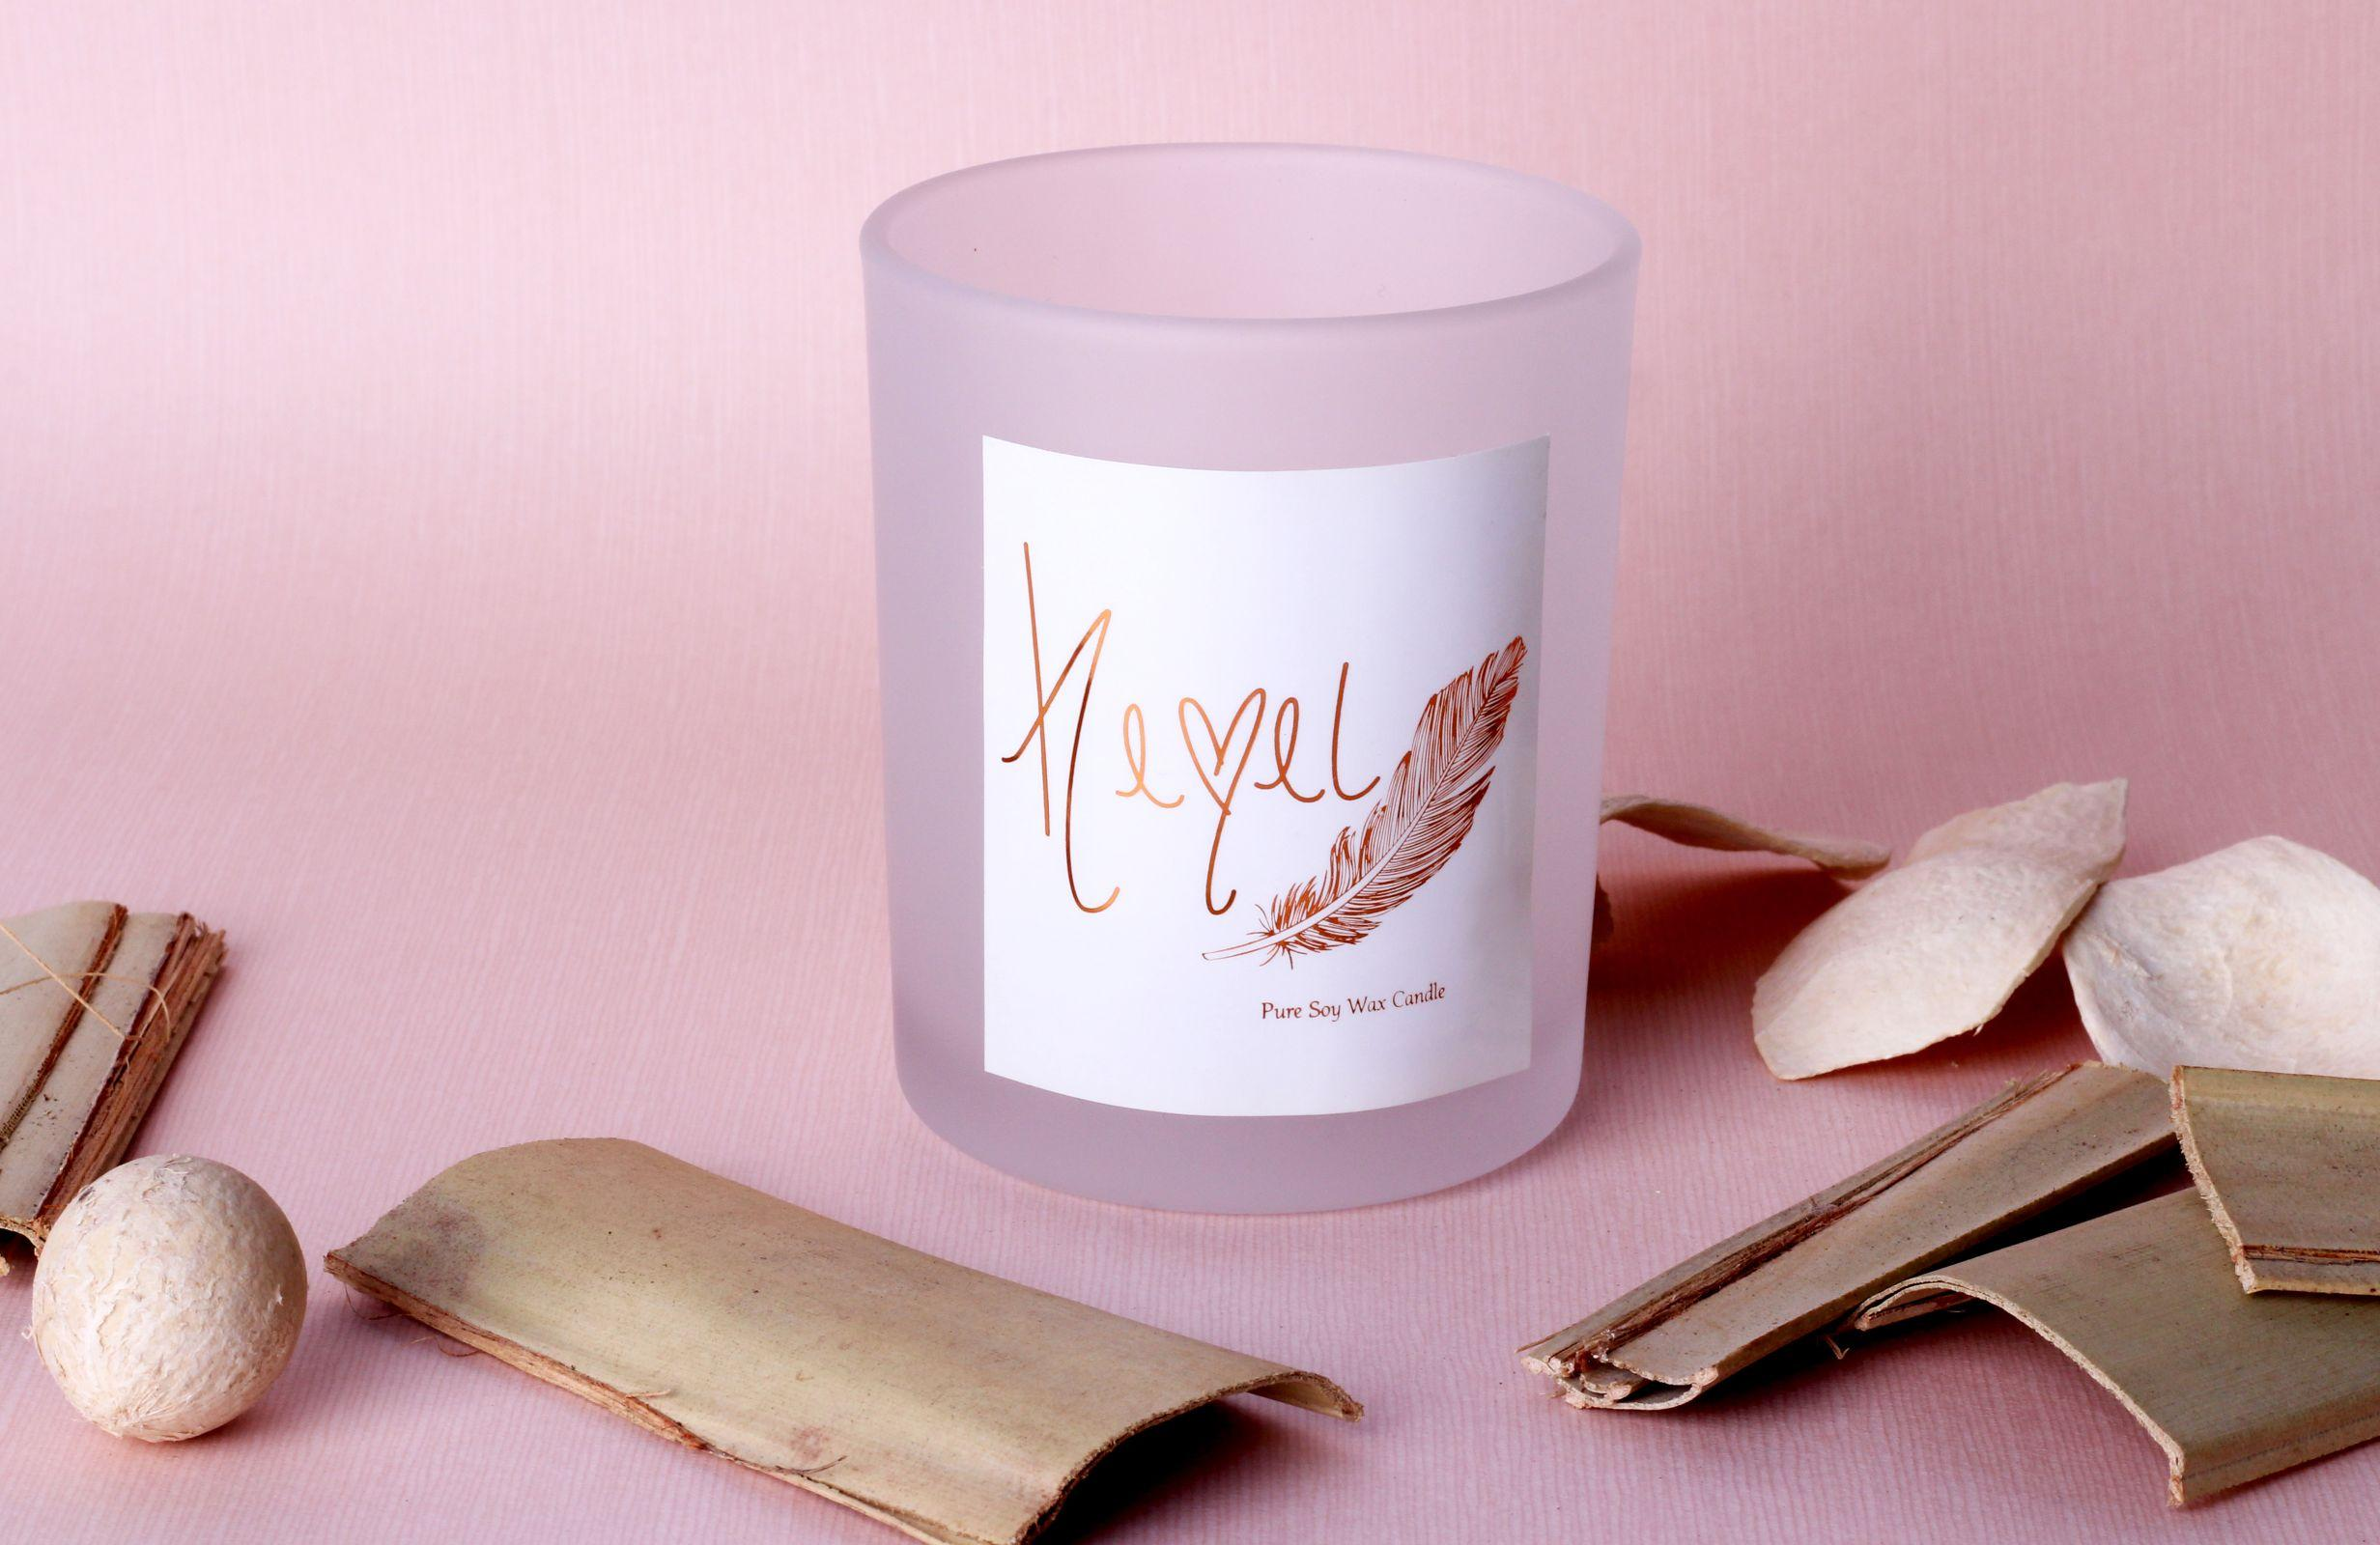 Make an Illuminating Impression with Personalised Candle Stickers